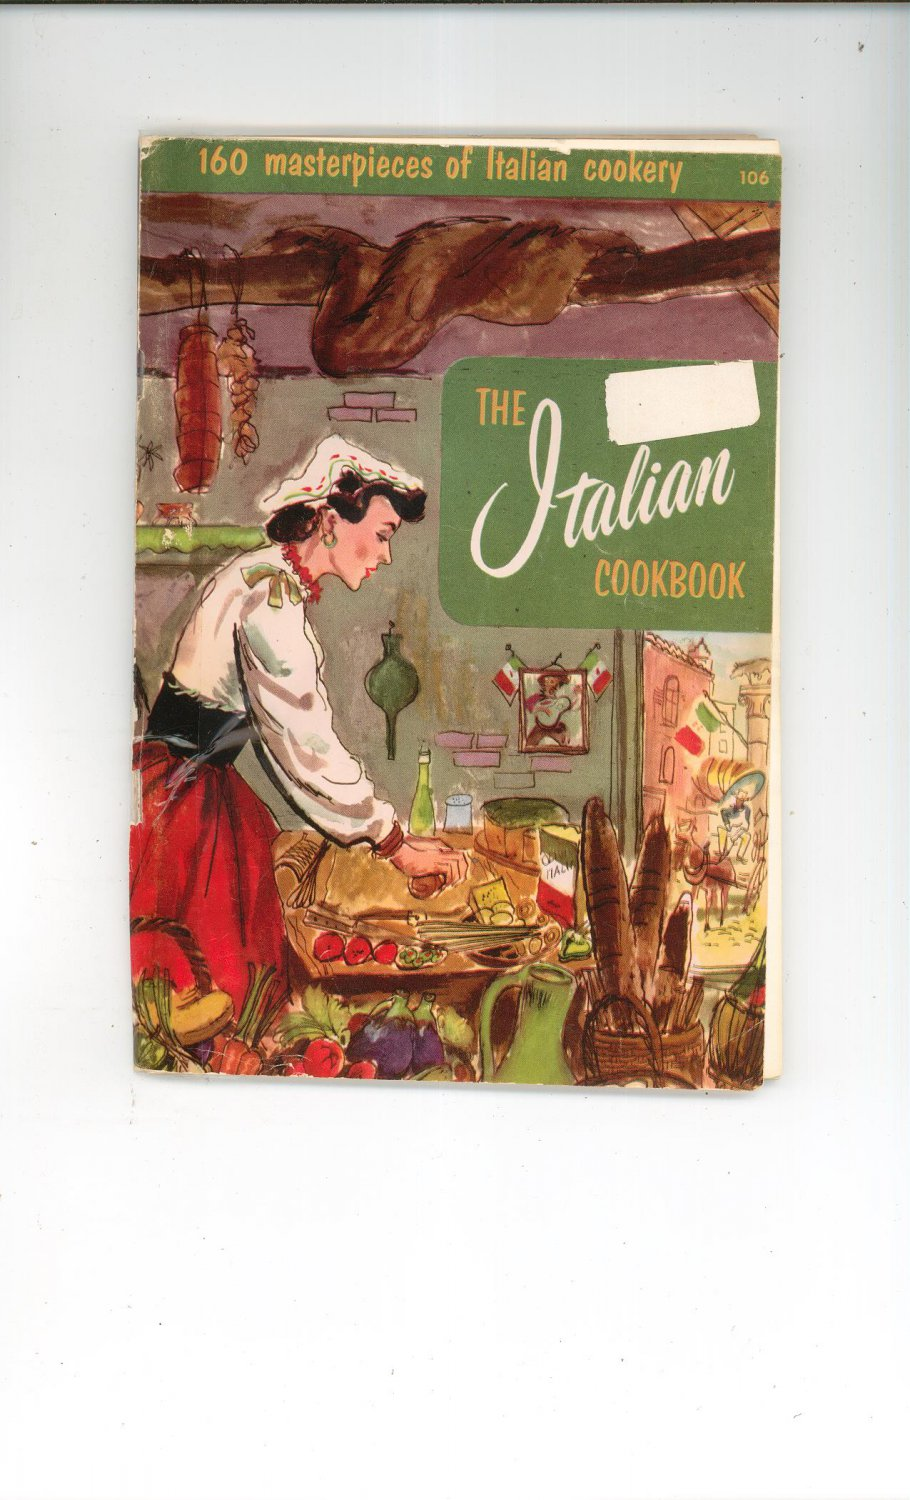 The Italian Cookbook 106 by Culinary - 215.4KB